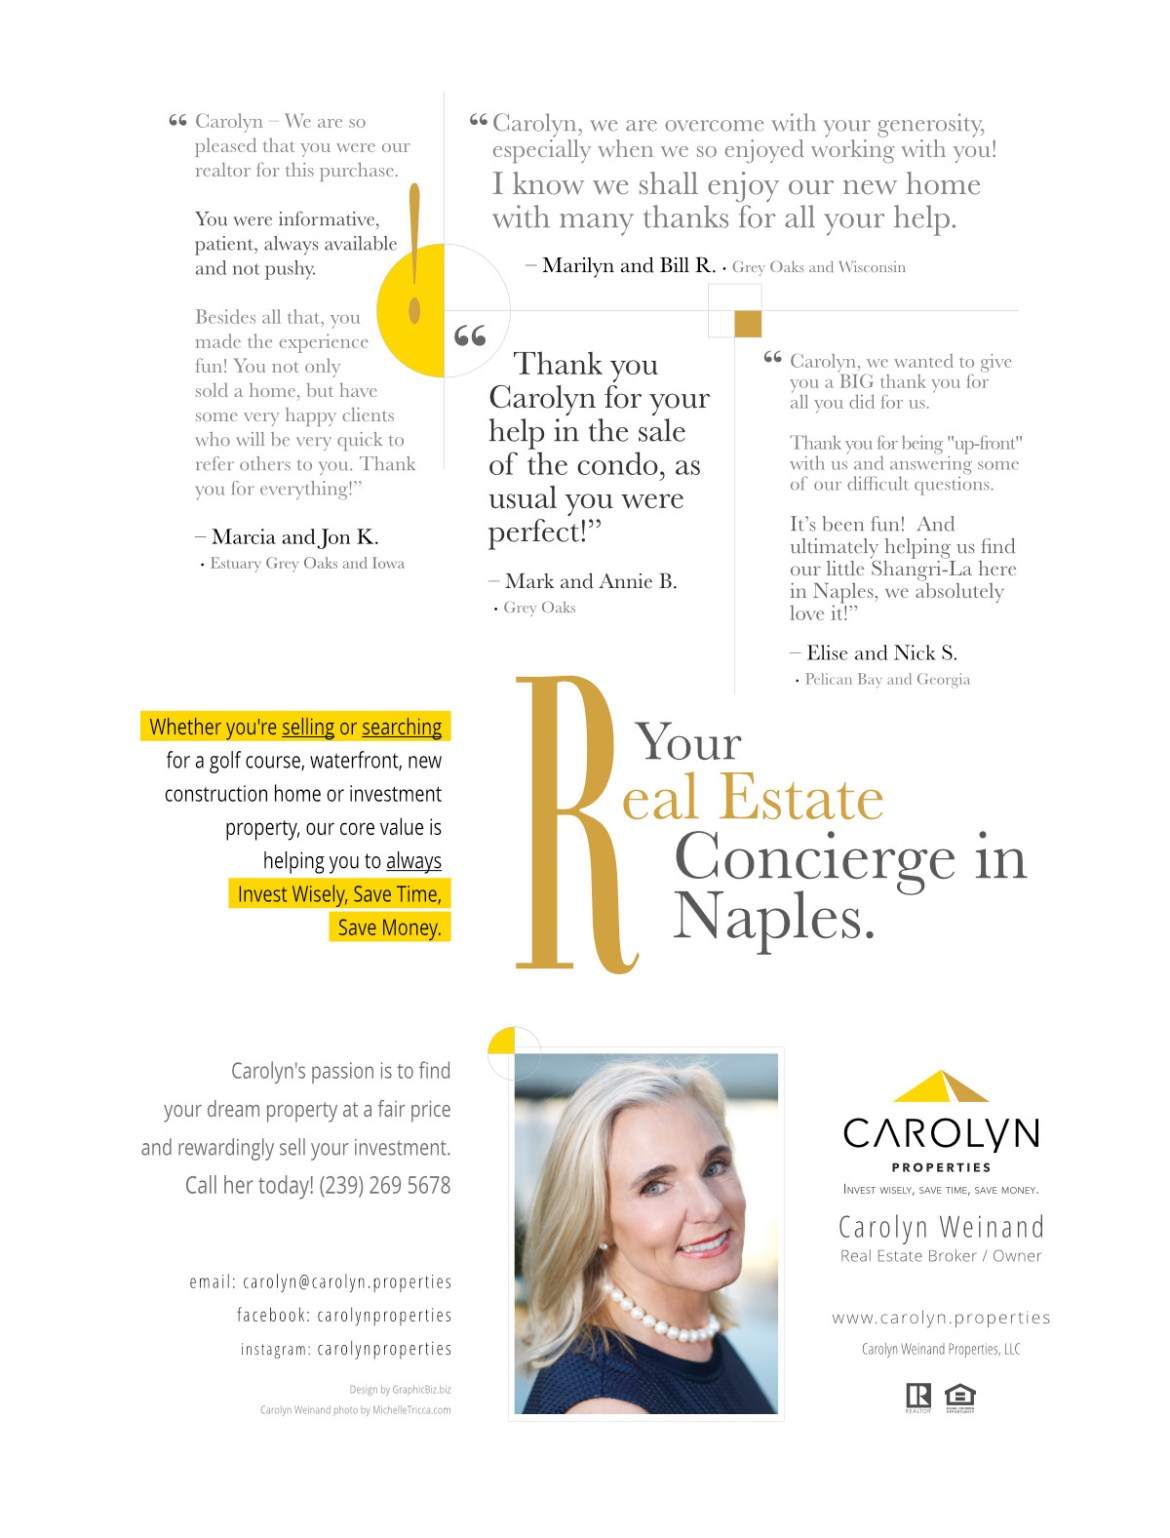 Carolyn Properties  client testimonials featured in advertising October 2017